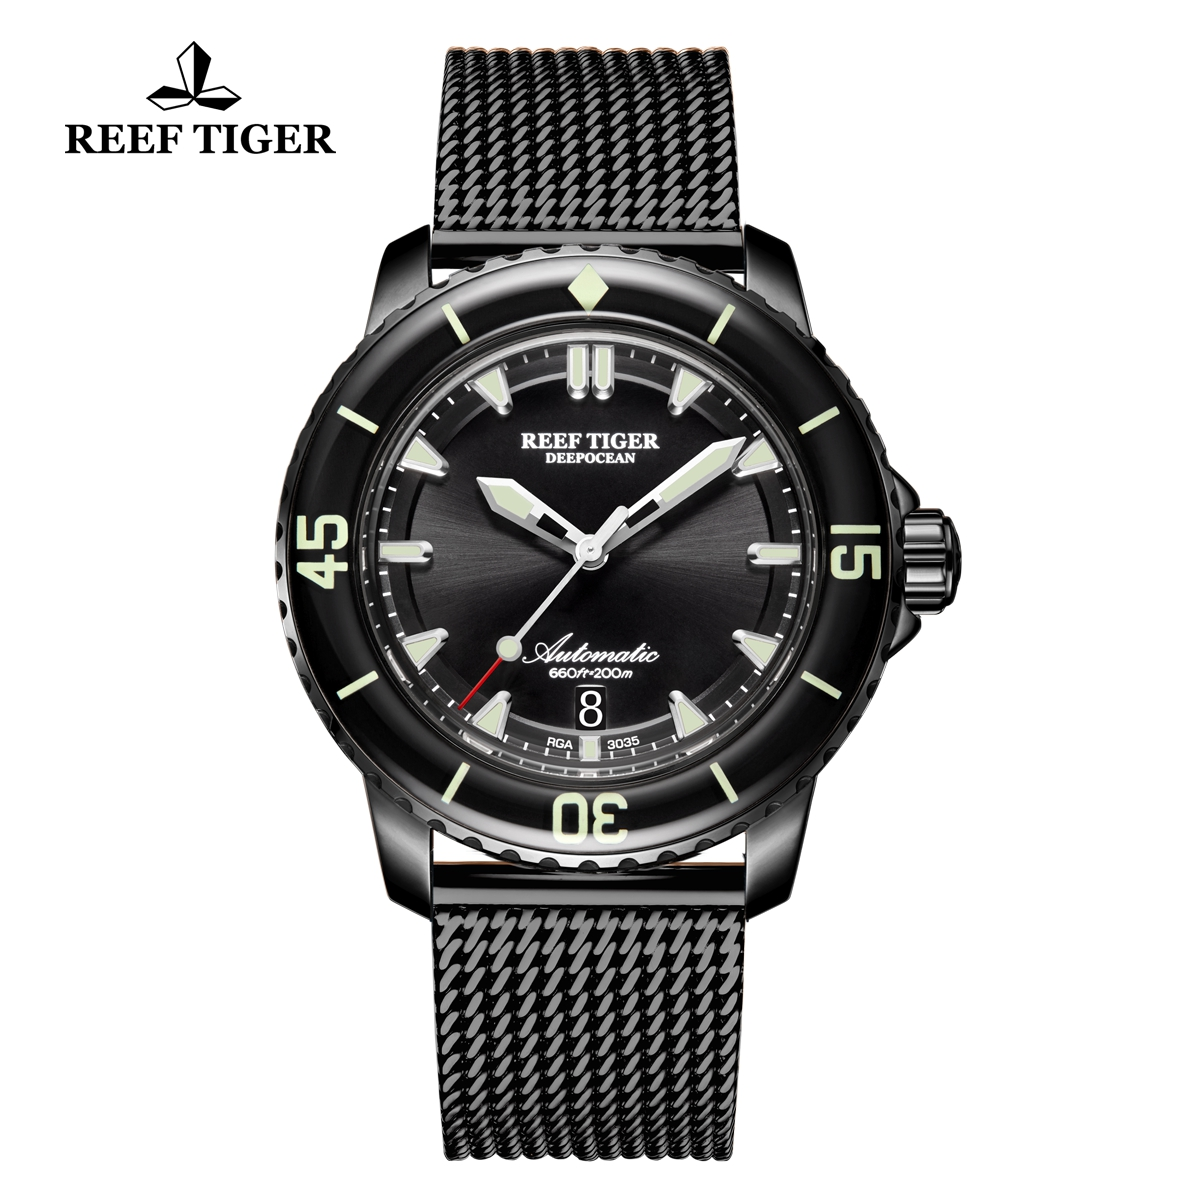 Reef Tiger Deep Ocean Casual Watches Automatic Watch PVD Case Black Dial RGA3035-BBBS